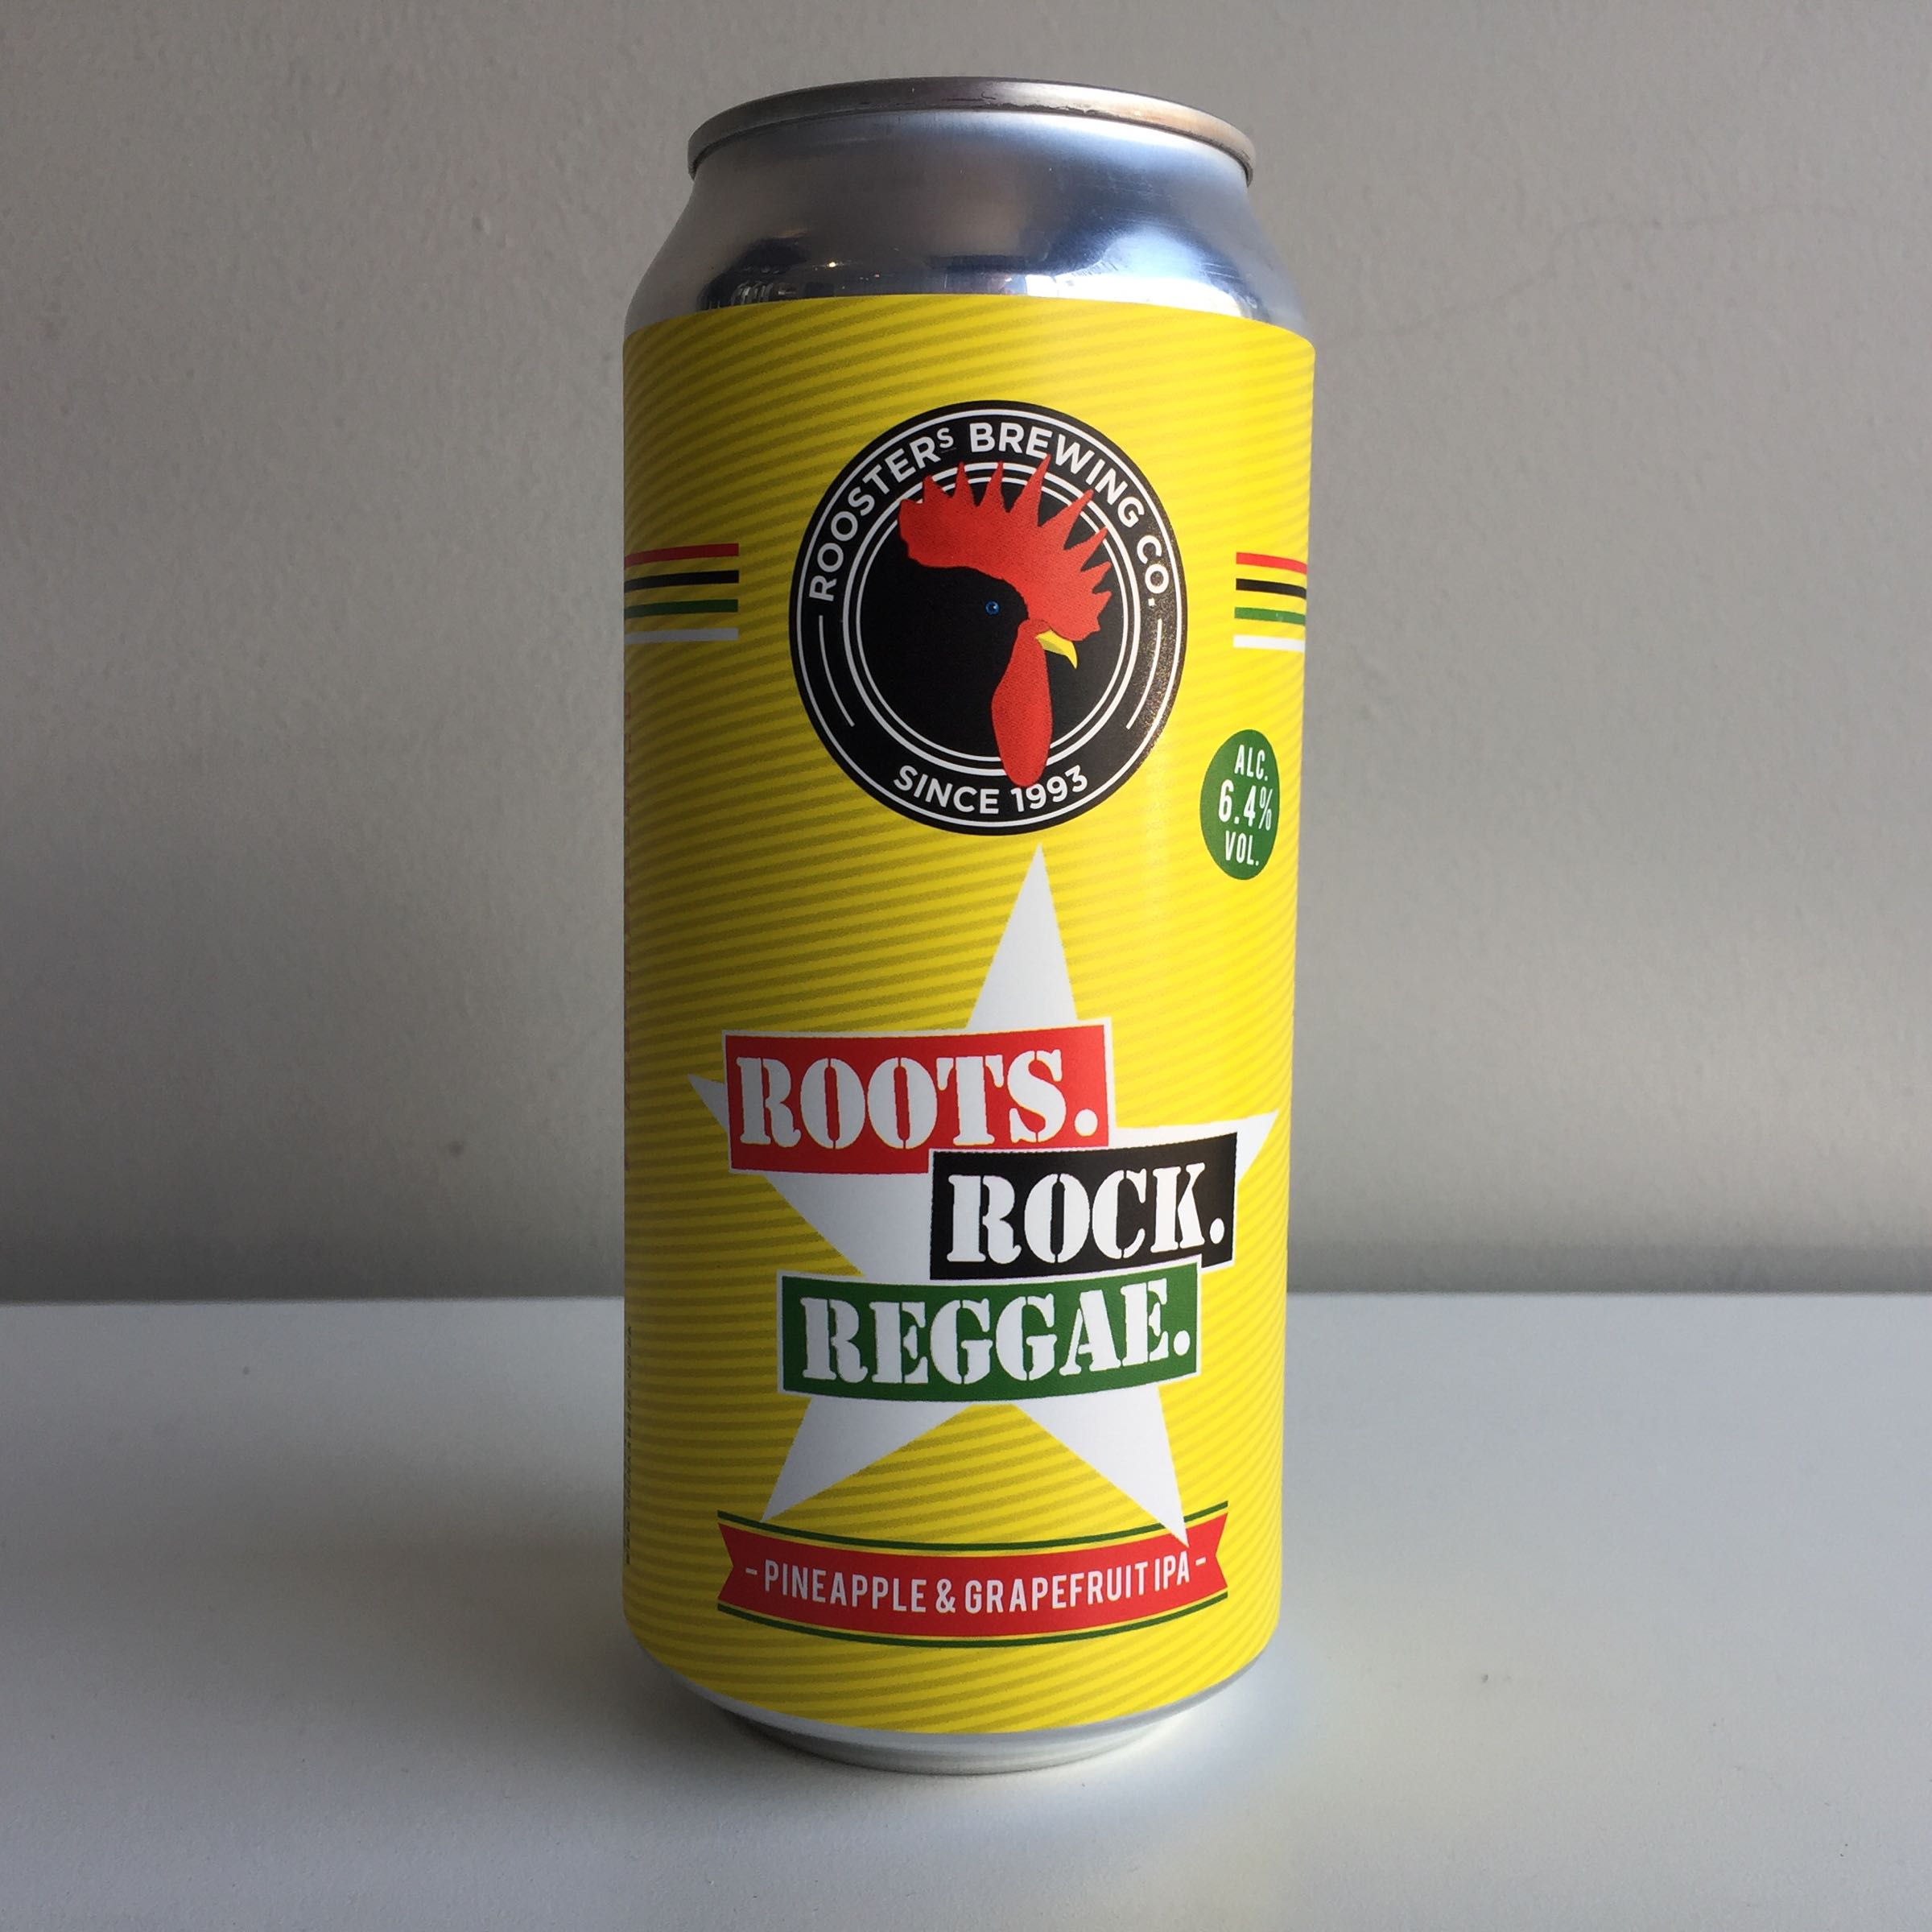 Roosters Brewing Co. 'Roots Rock Reggae' Pineapple & Grapefruit IPA 440ml 6.4%